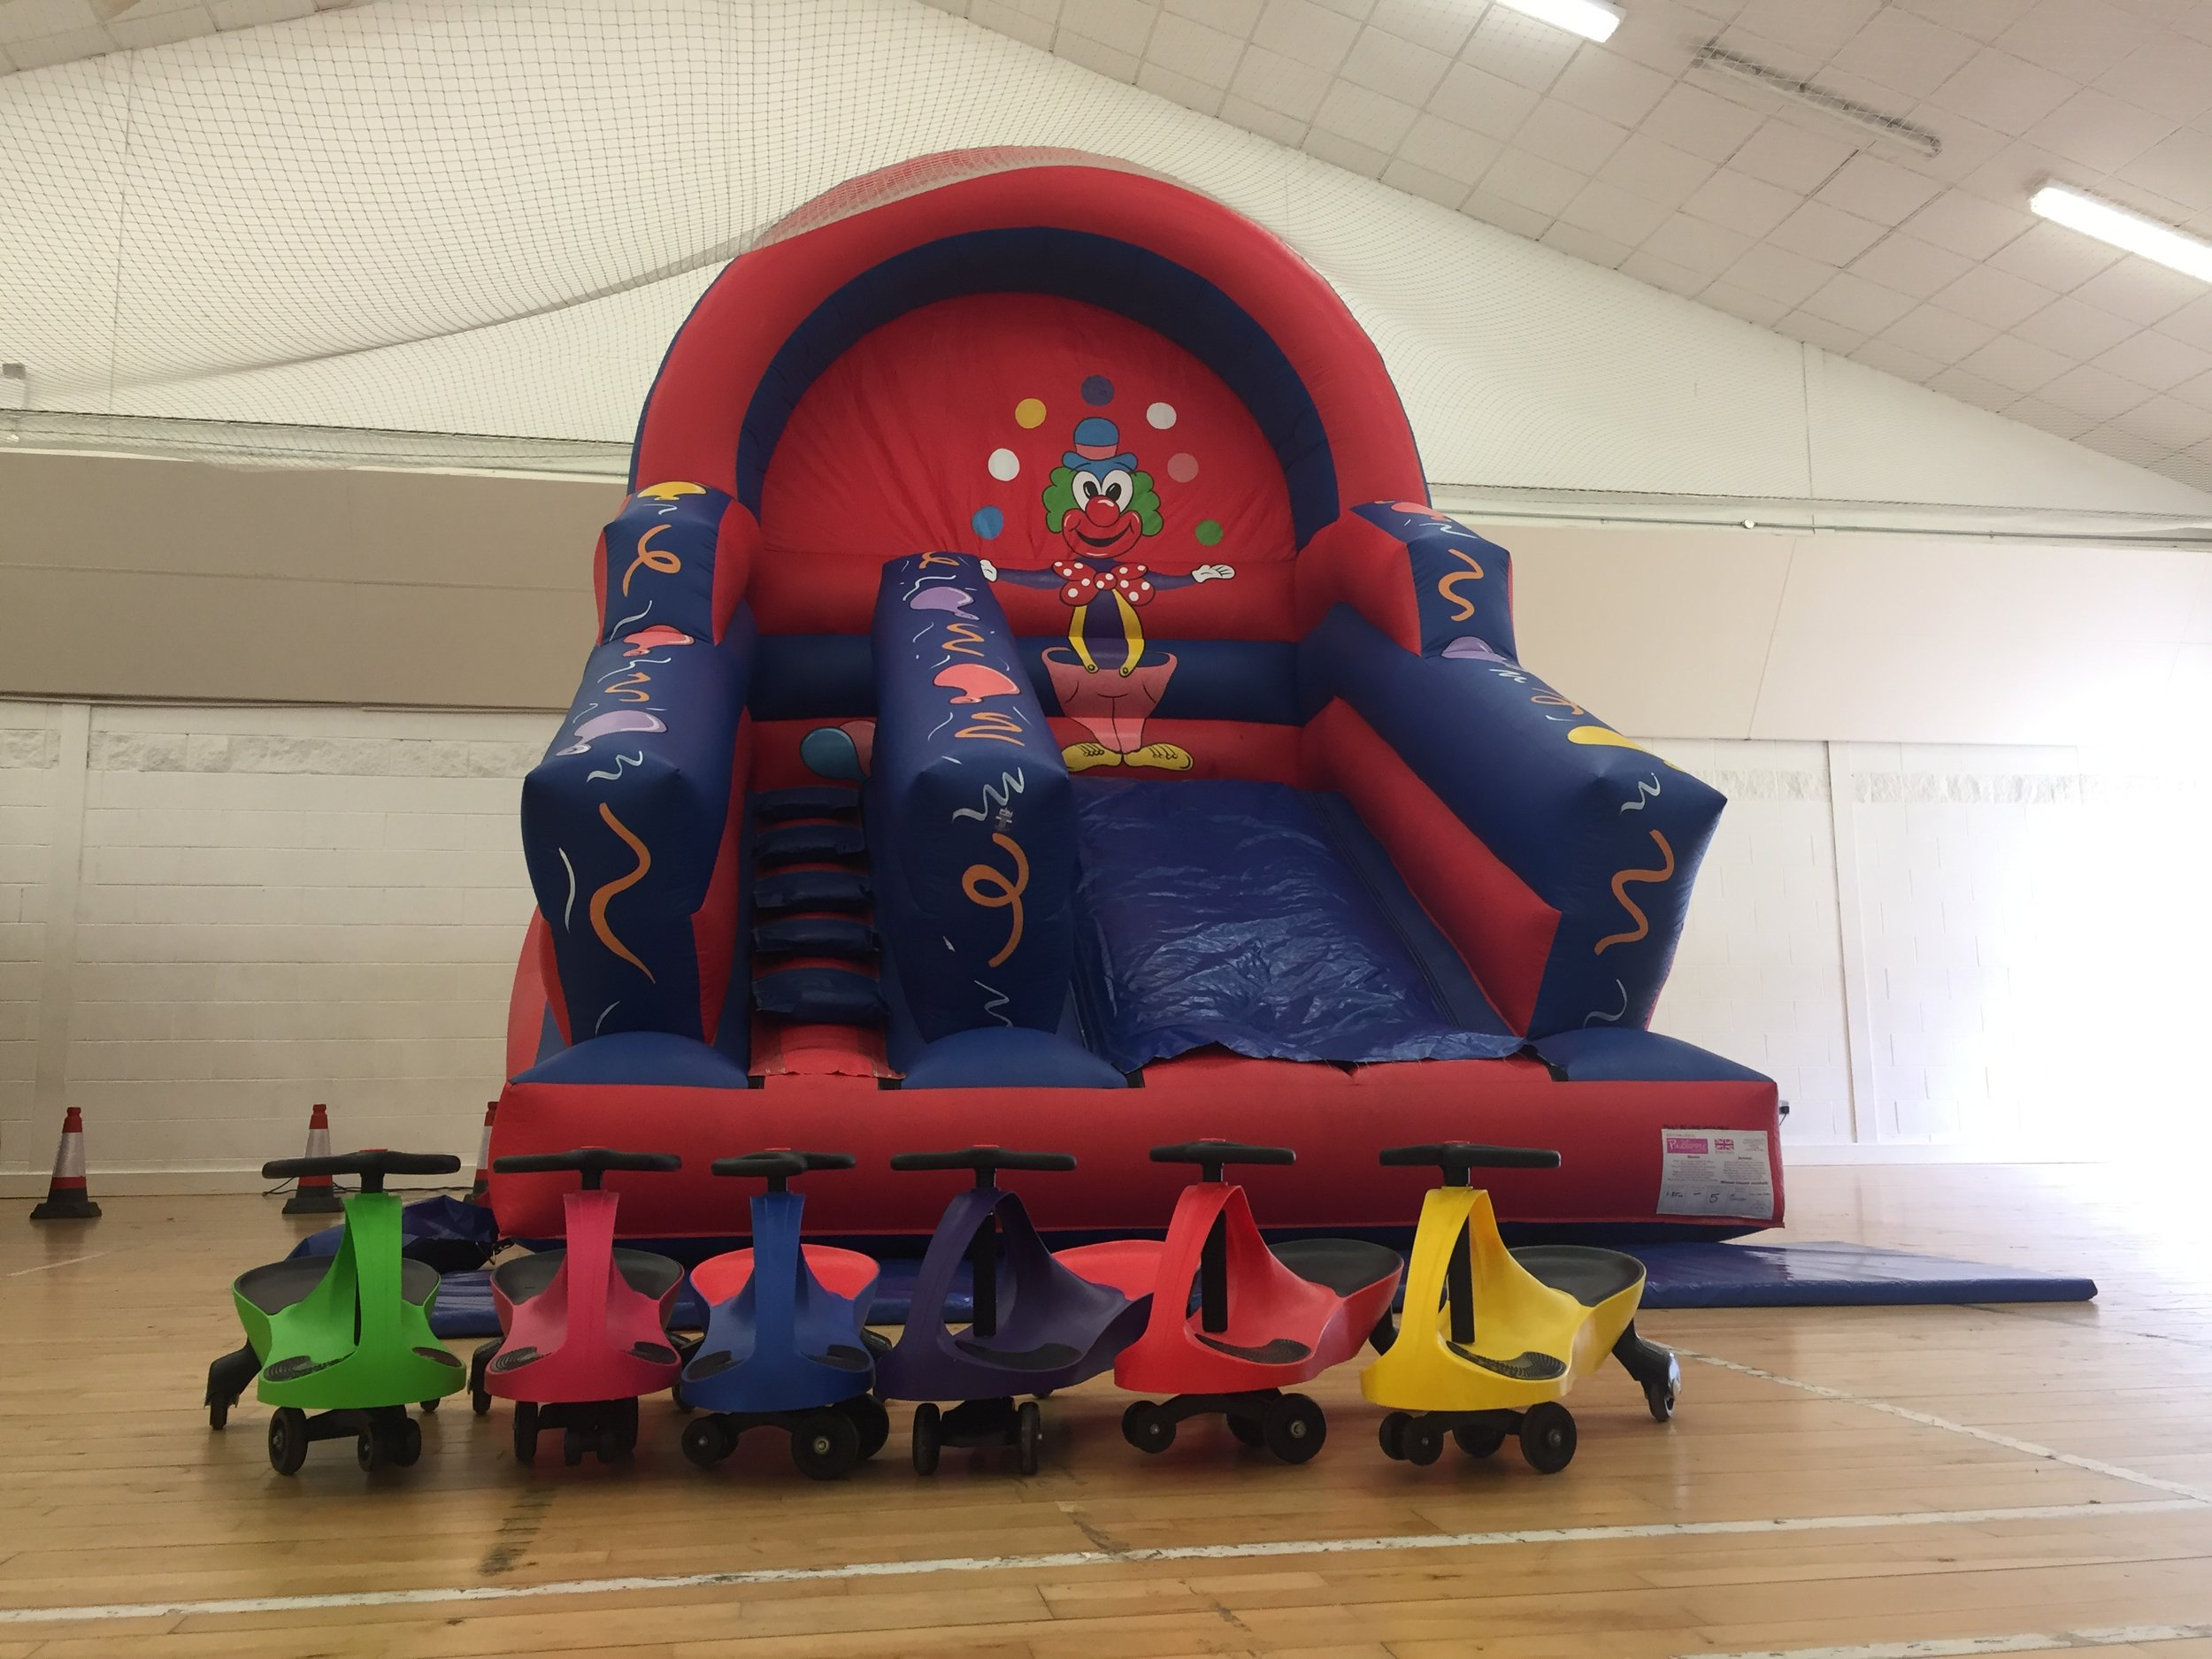 Inflatable Slides can be combined with our Bouncy Castles to provide a good range of activities.